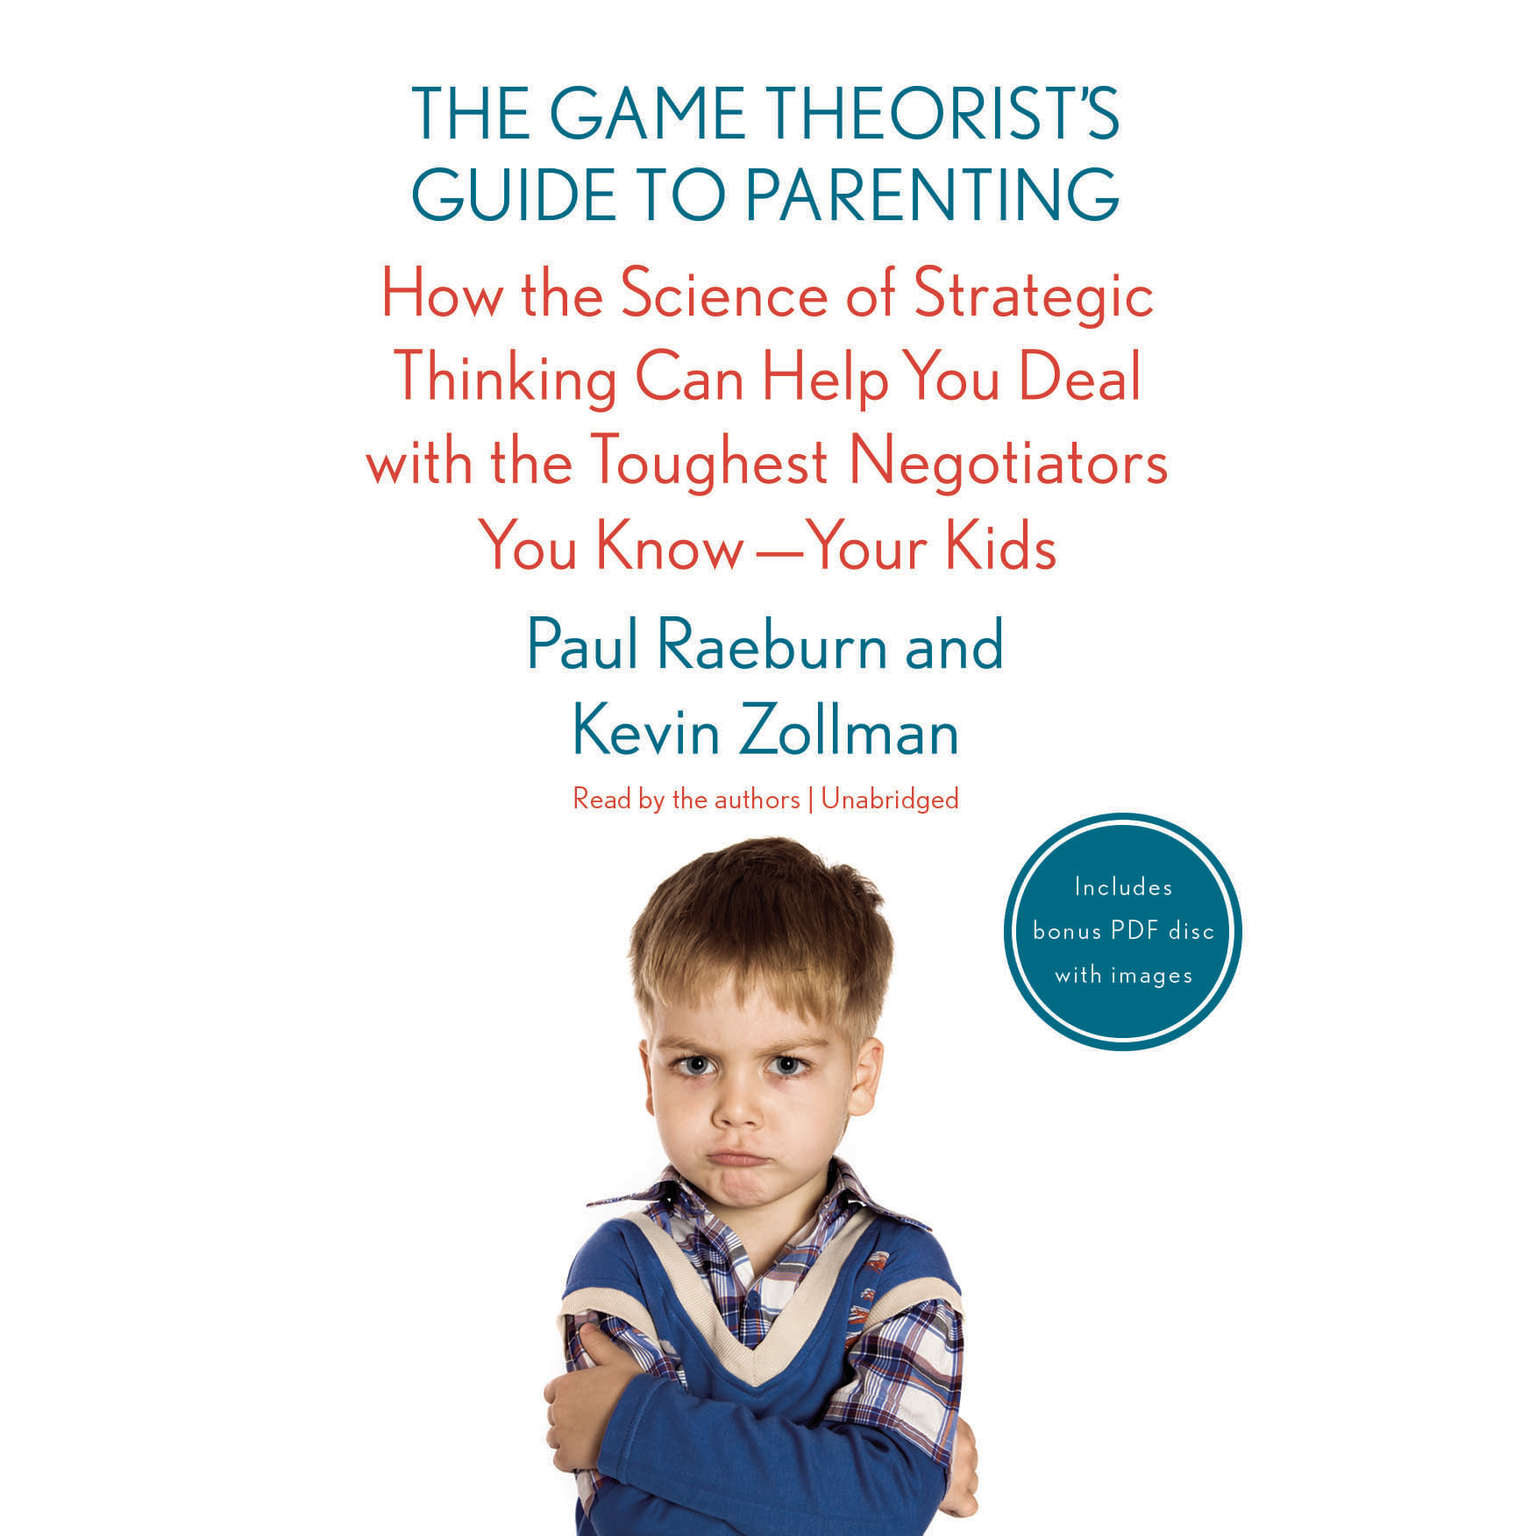 The Game Theorist's Guide to Parenting: How the Science of Strategic Thinking Can Help You Deal with the Toughest Negotiators You Know—Your Kids Audiobook, by Paul Raeburn